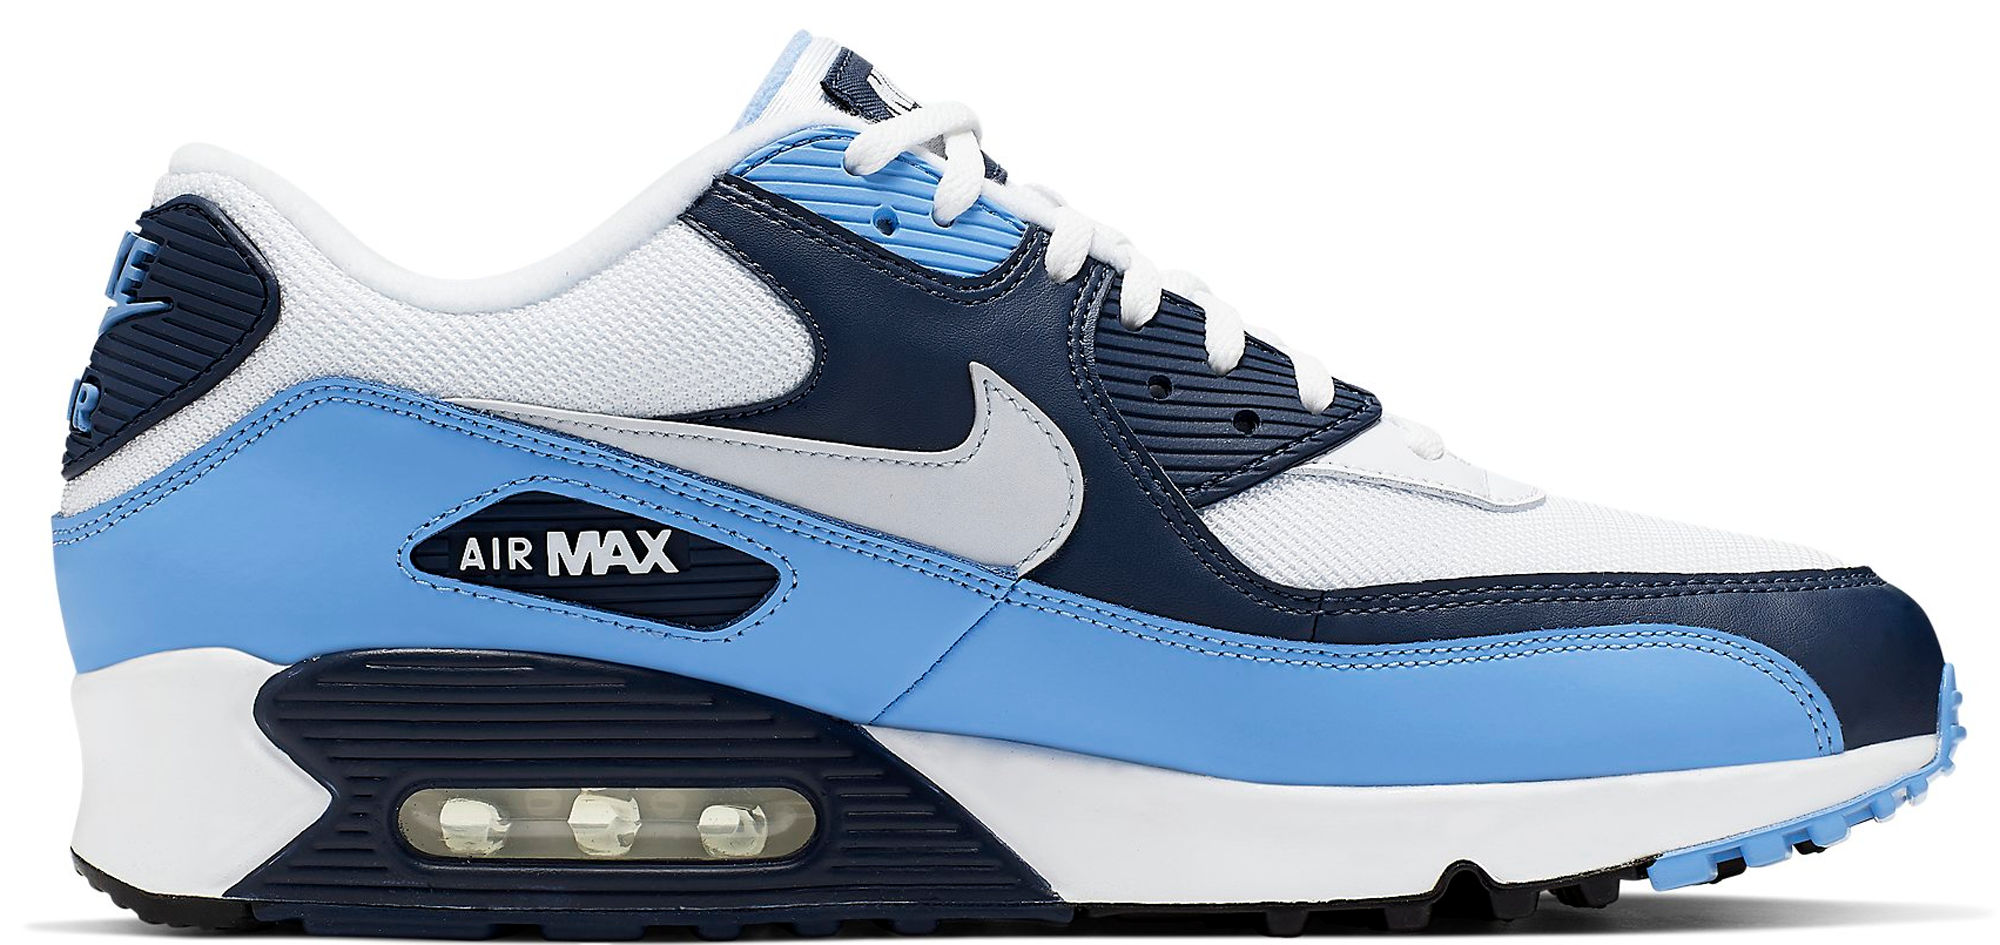 buy online 1032a cc090 Air Max 90 Essential in White-Pure Platinum-University Blue-Midnight Navy